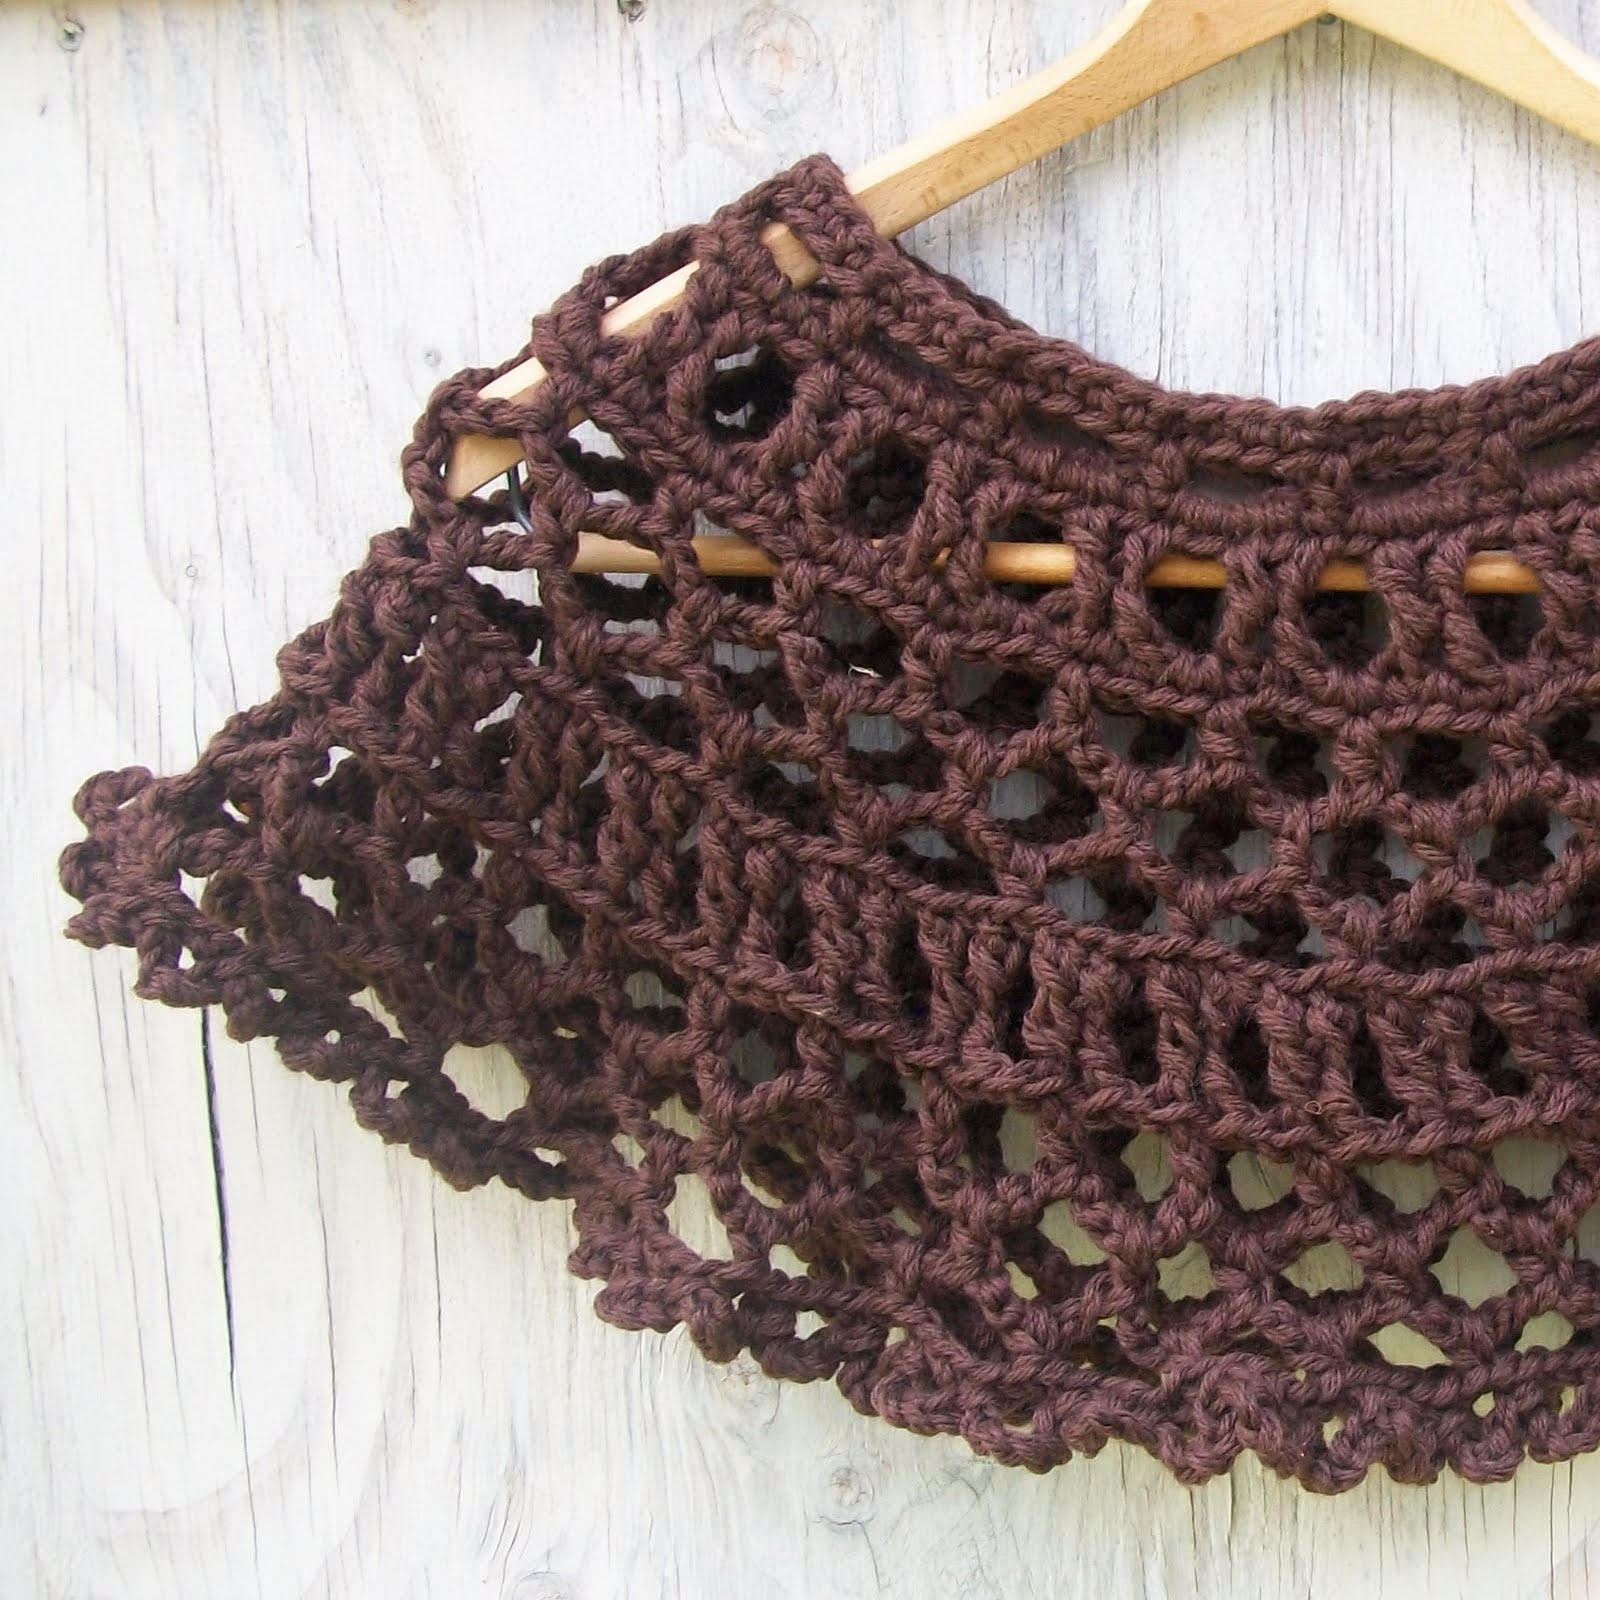 Knitting architect dark chocolate lace cape pattern for Chocolate lace template